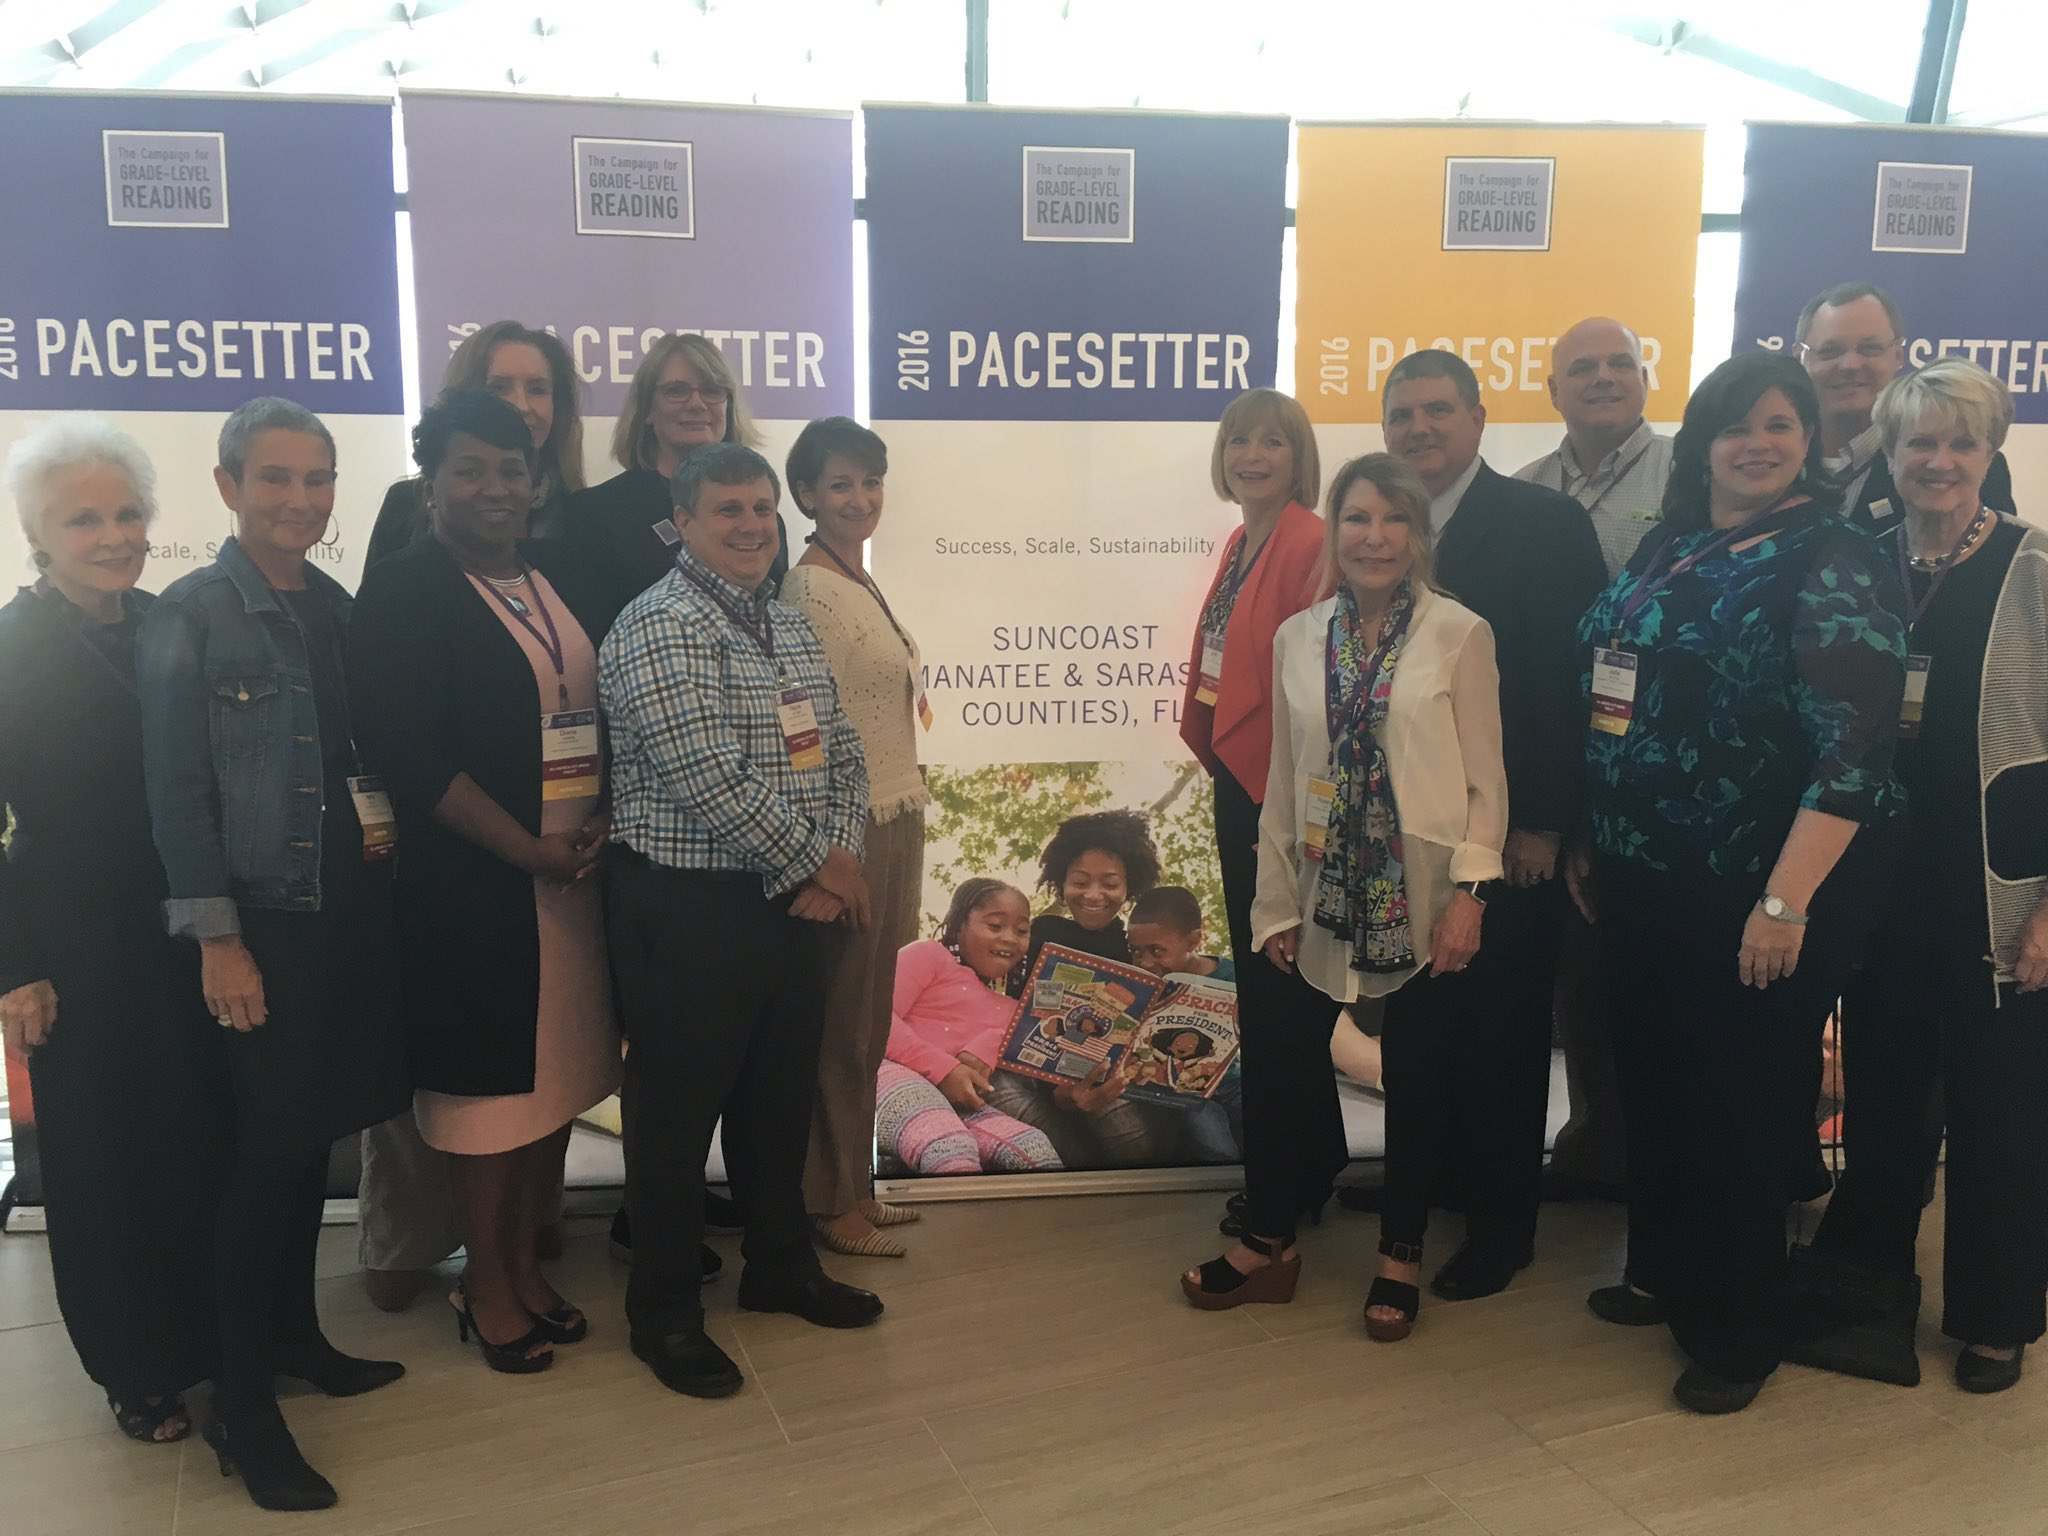 YAY for @SuncoastCGLR - what a team! Leader @duda_beth #Glrweek #pacesetter TY @ThePattersonFdn @DebraMJacobs https://t.co/T7fqVH28hG